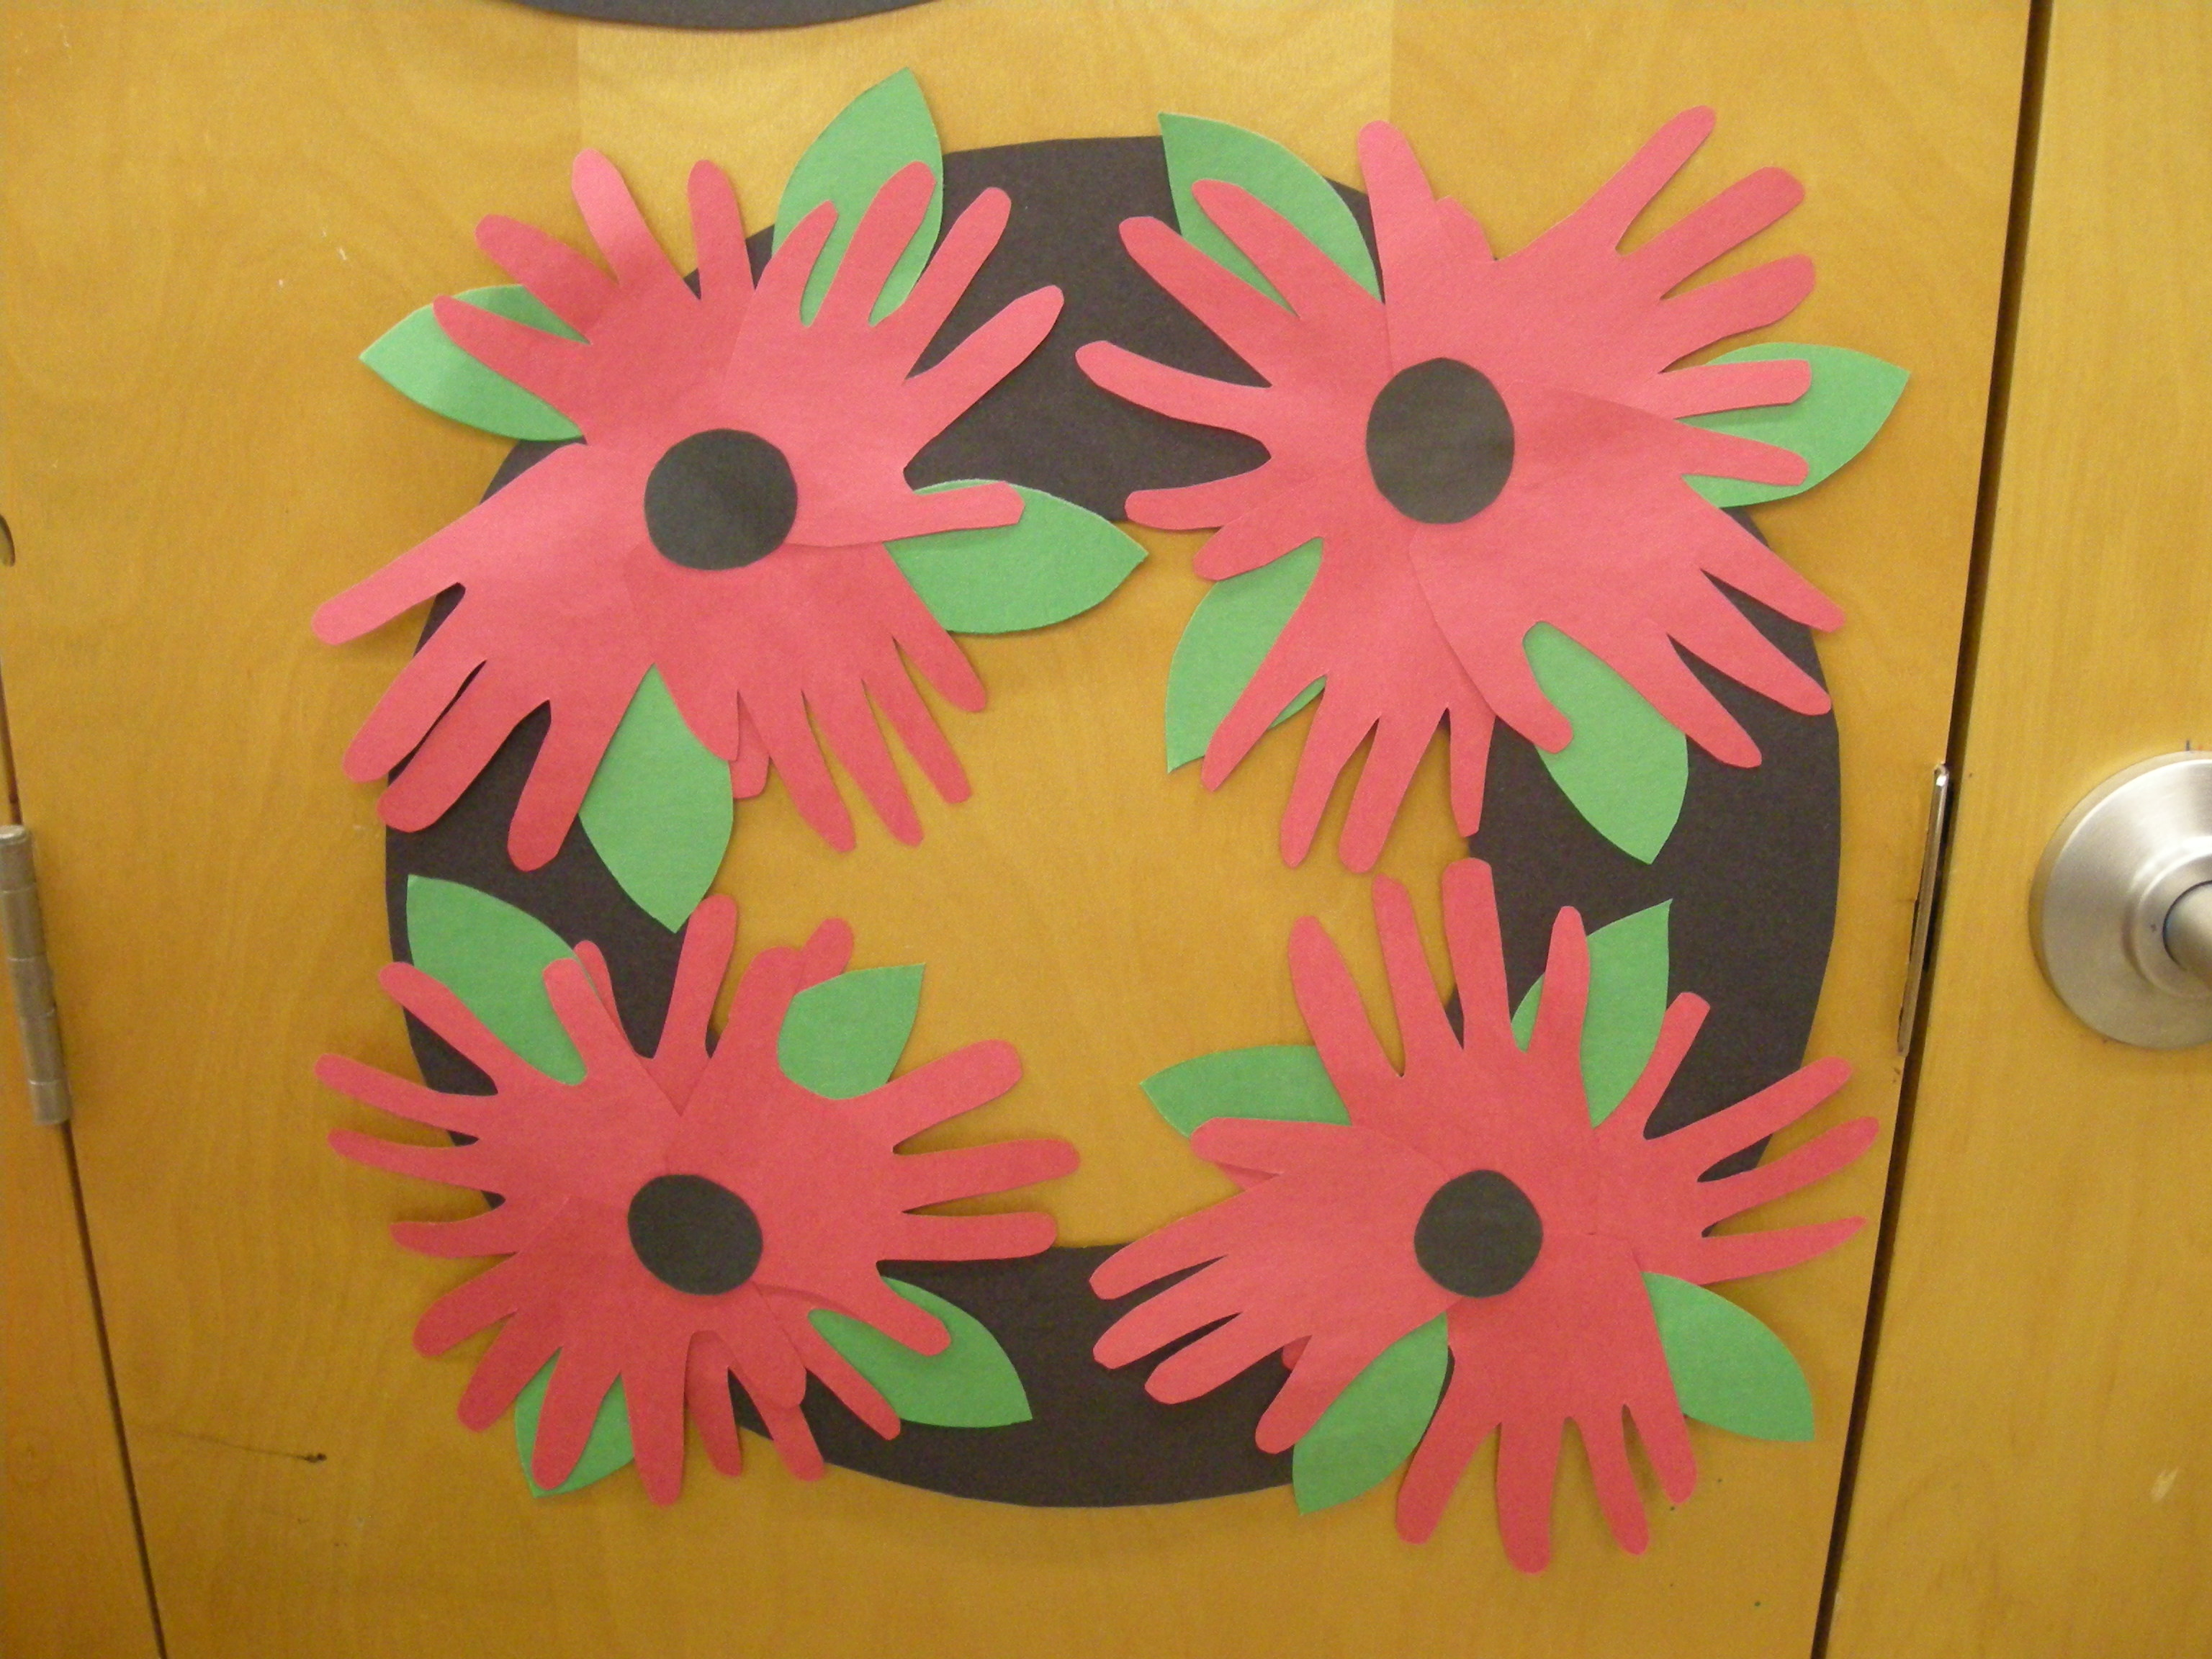 Remembrance day in kindergarten mommy 39 s lessons - Remembrance day craft ideas ...